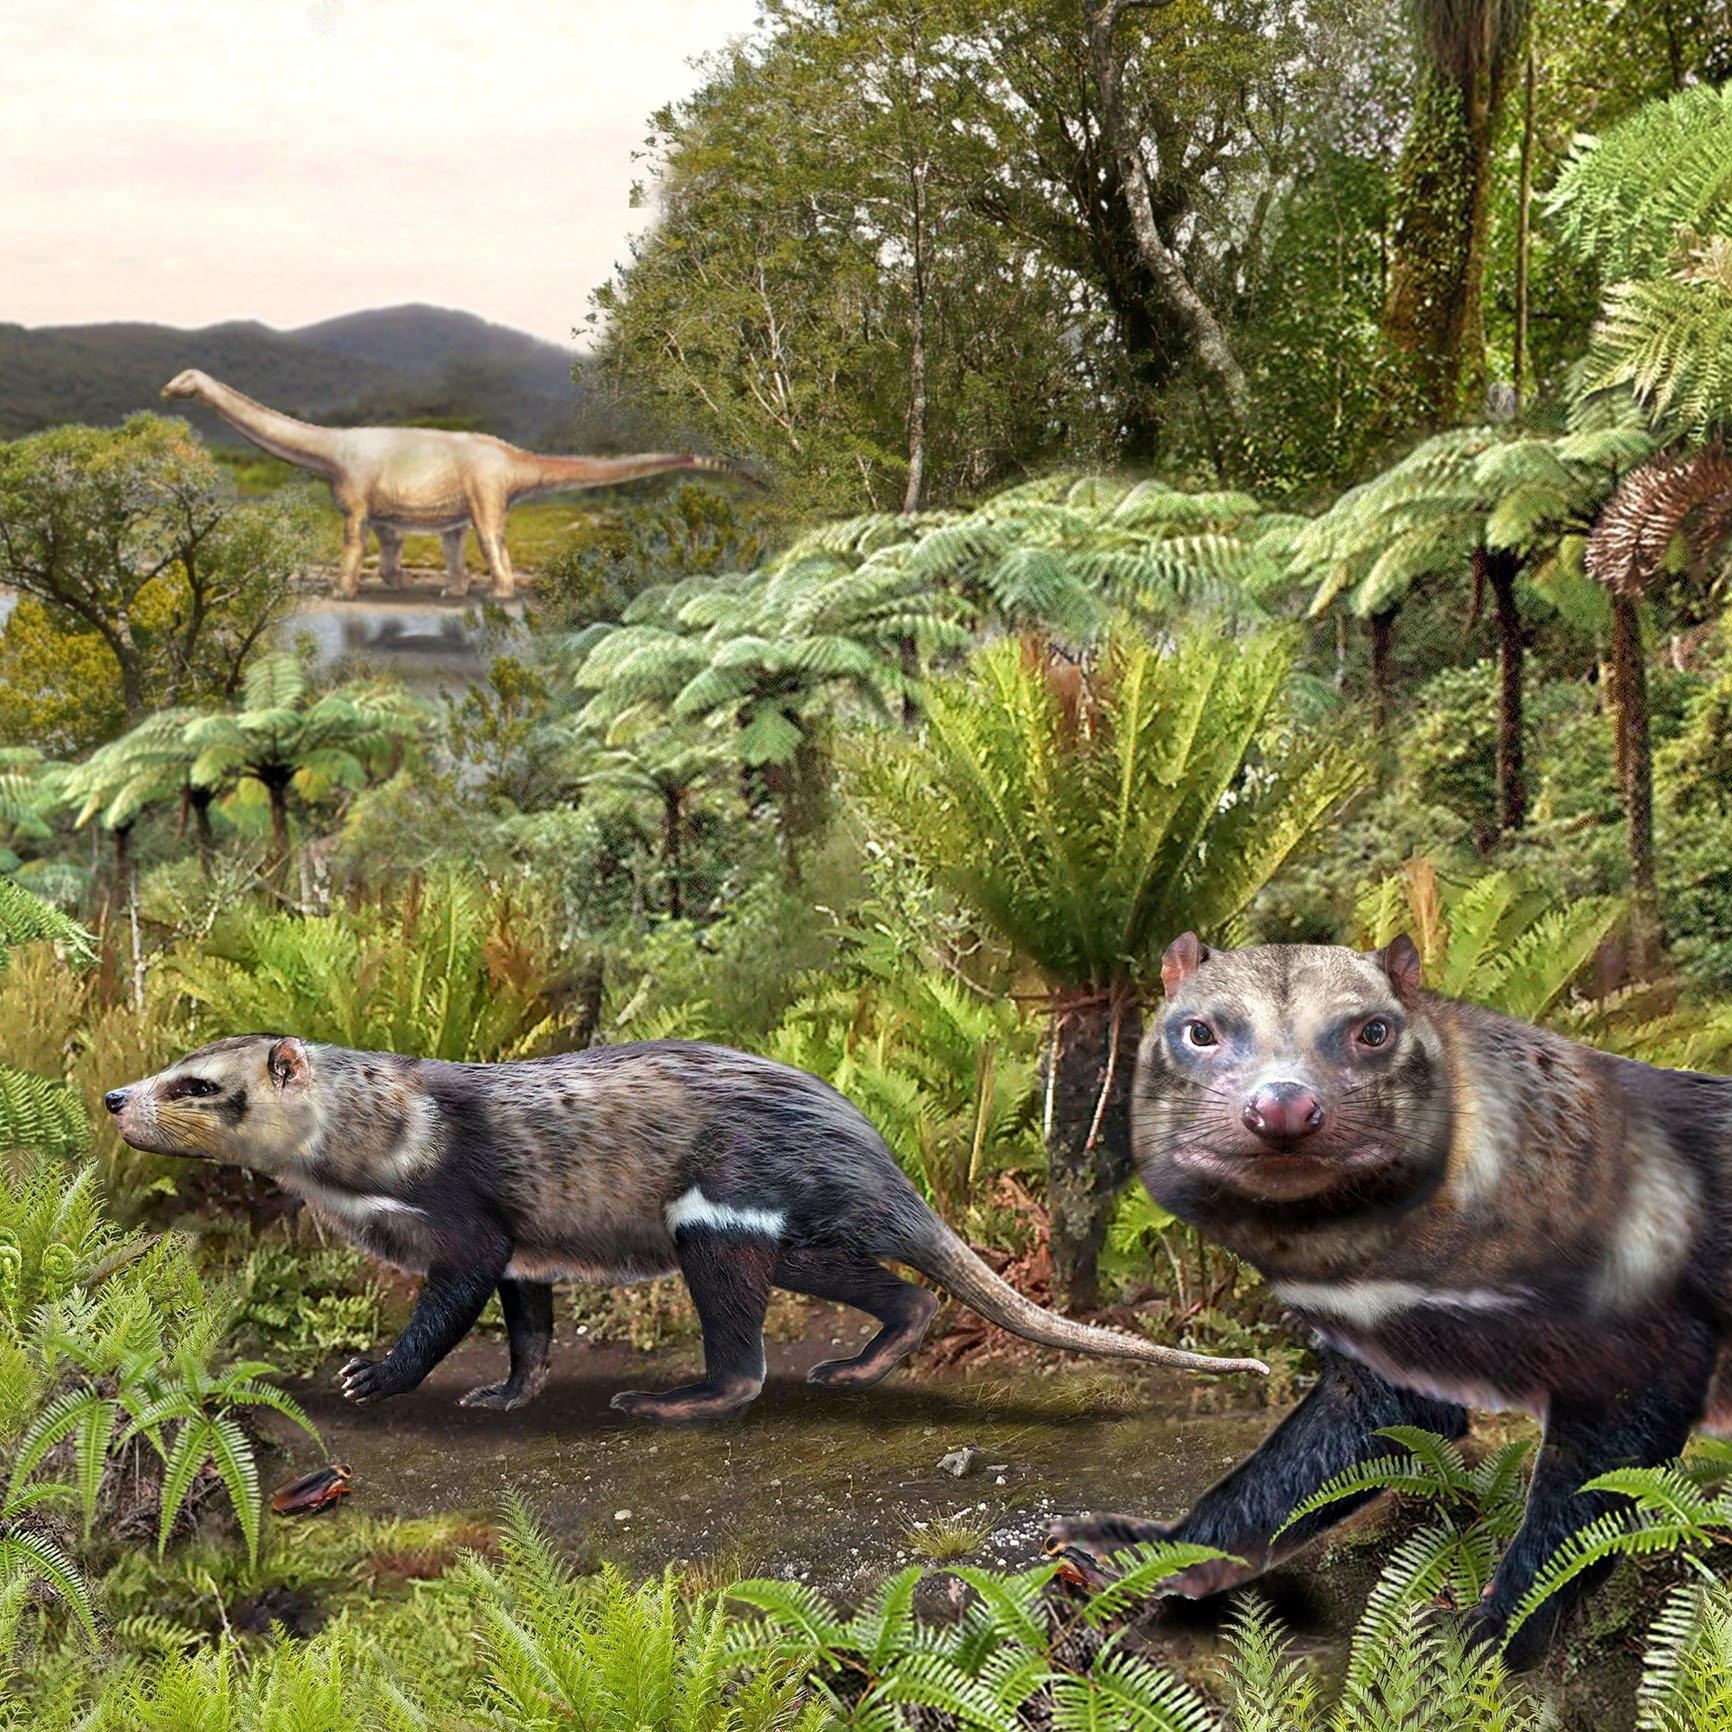 An artist impression of a new species of mammal, baptized Orretherium tzen, which inhabited Patagonia during the Upper Cretaceous period, according to a study published April 7, 2021, in the journal Scientific Reports of the Nature line. (Chilean Antarctic Institute via REUTERS)